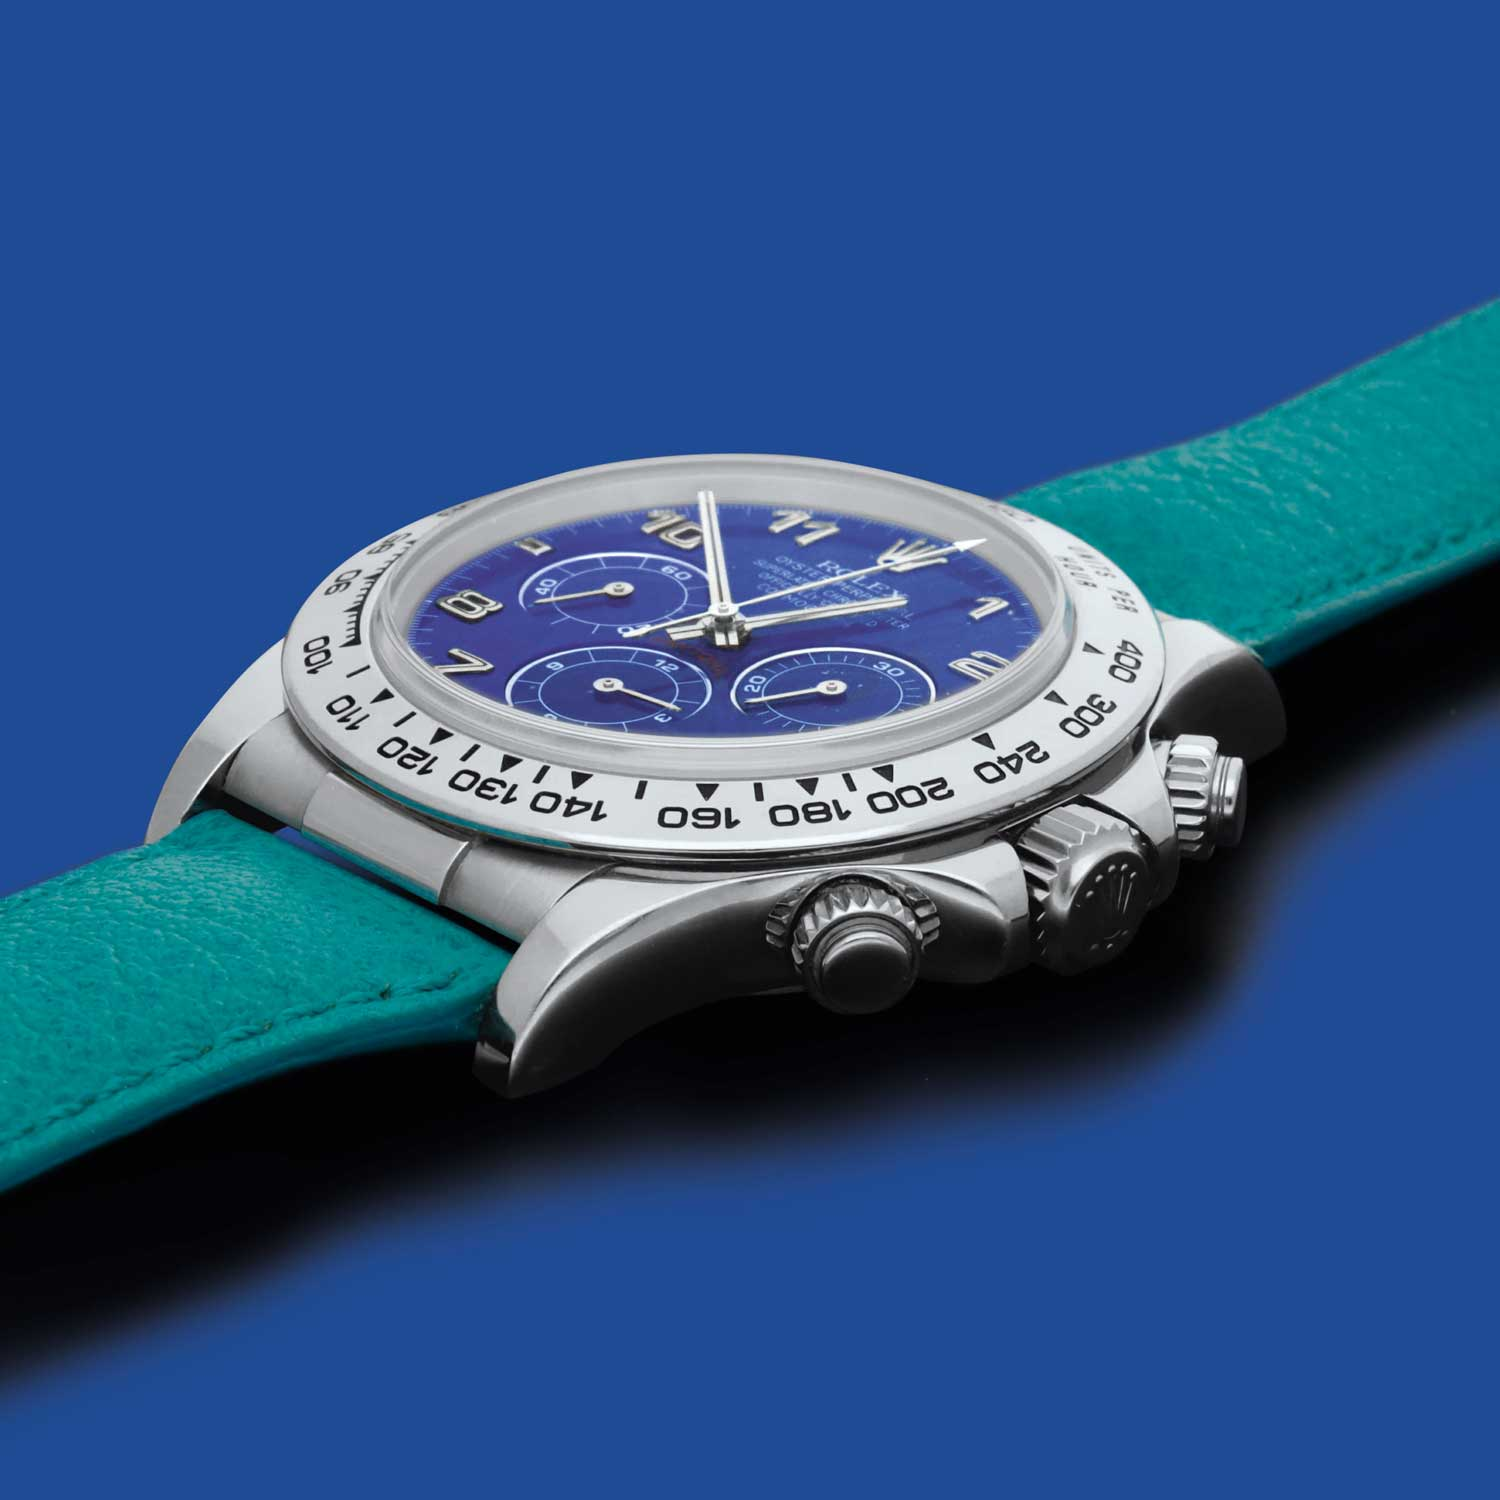 Unique platinum Perpetual Daytona ref. 16516 with lapis lazuli dial at Sotheby's